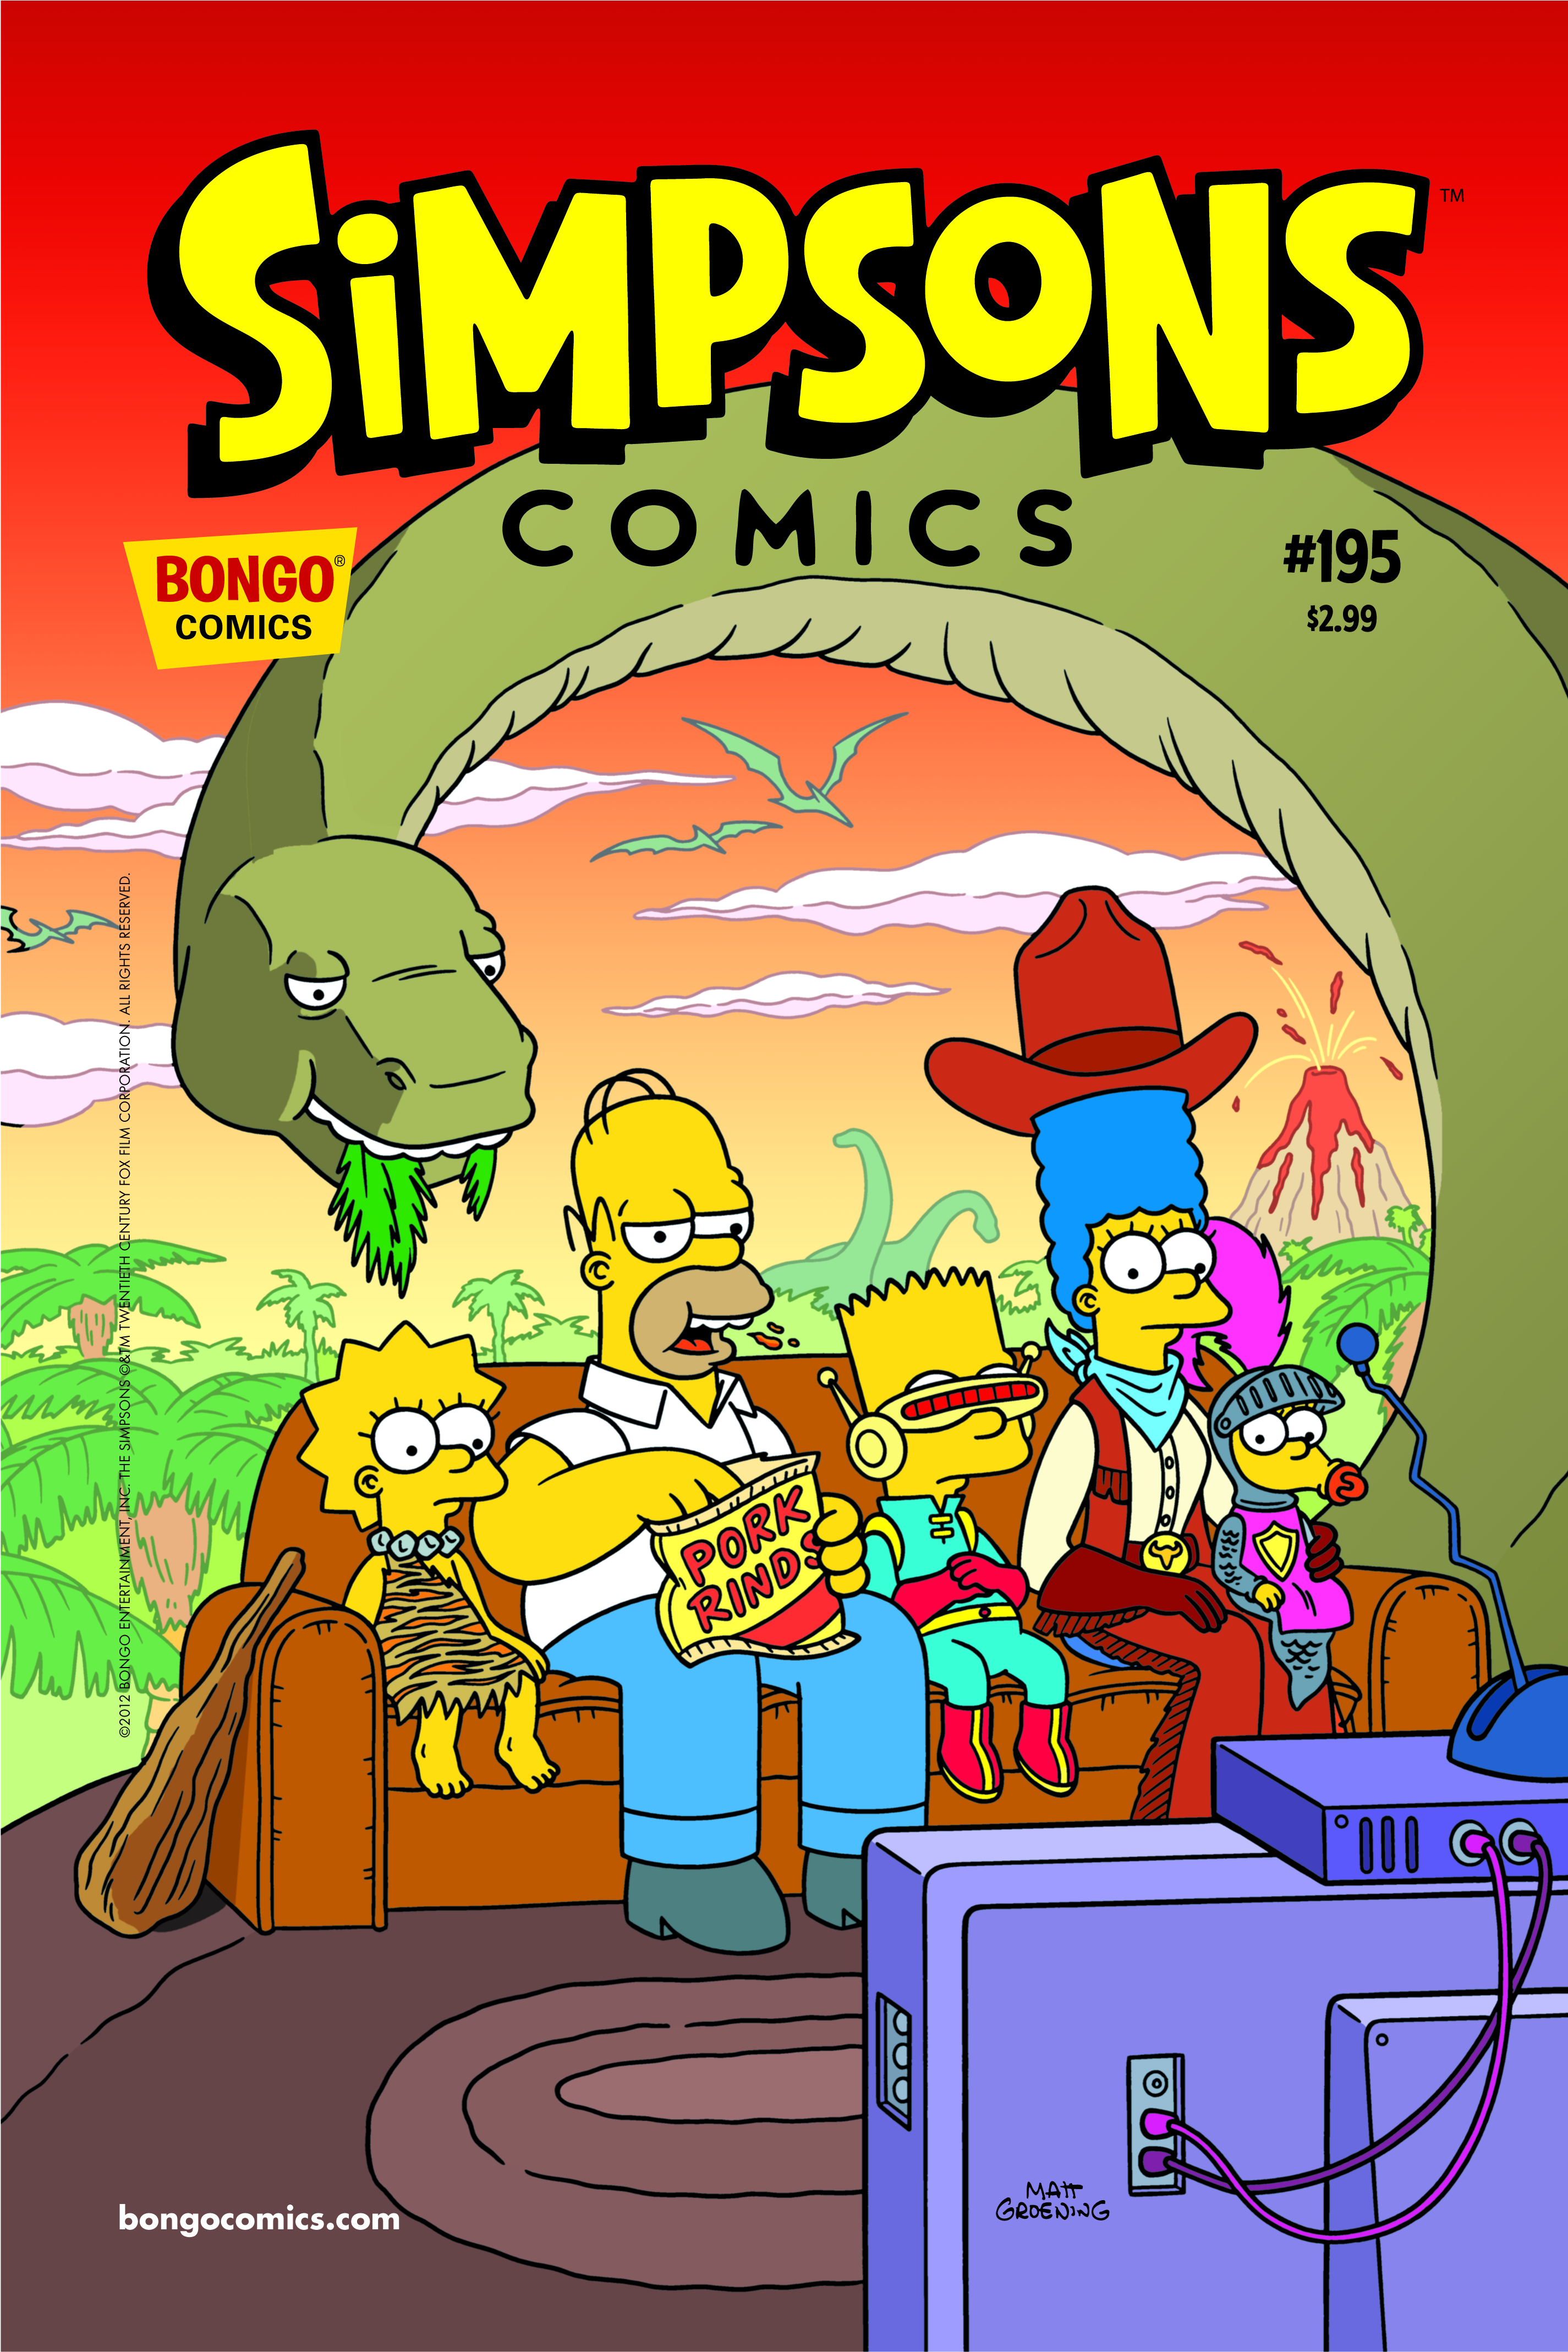 SIMPSONS COMICS #195